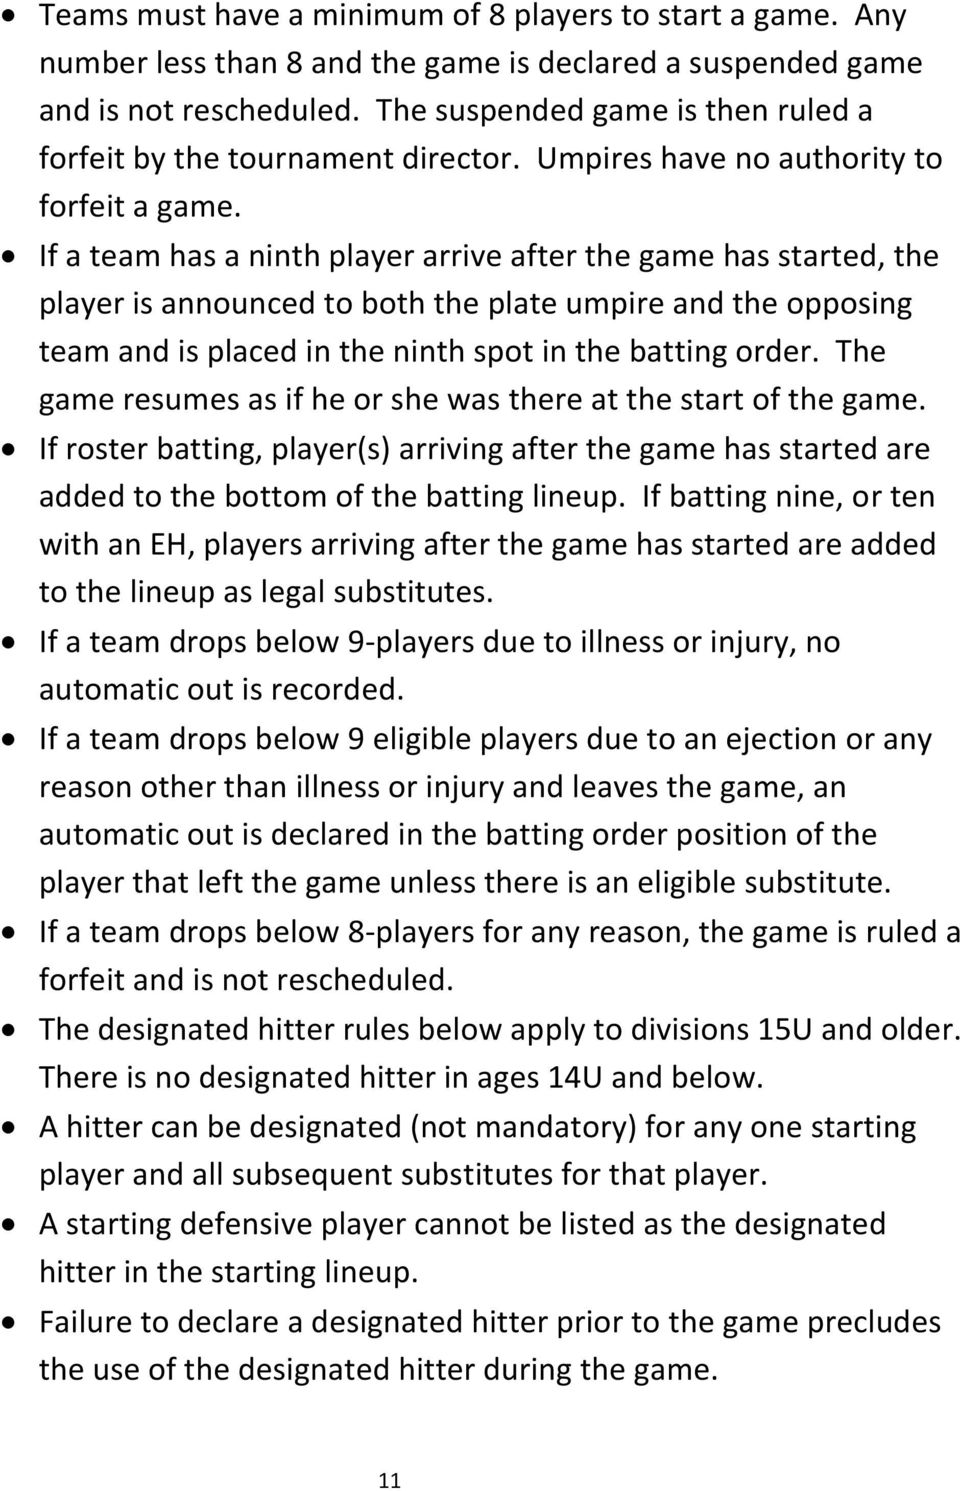 If a team has a ninth player arrive after the game has started, the player is announced to both the plate umpire and the opposing team and is placed in the ninth spot in the batting order.